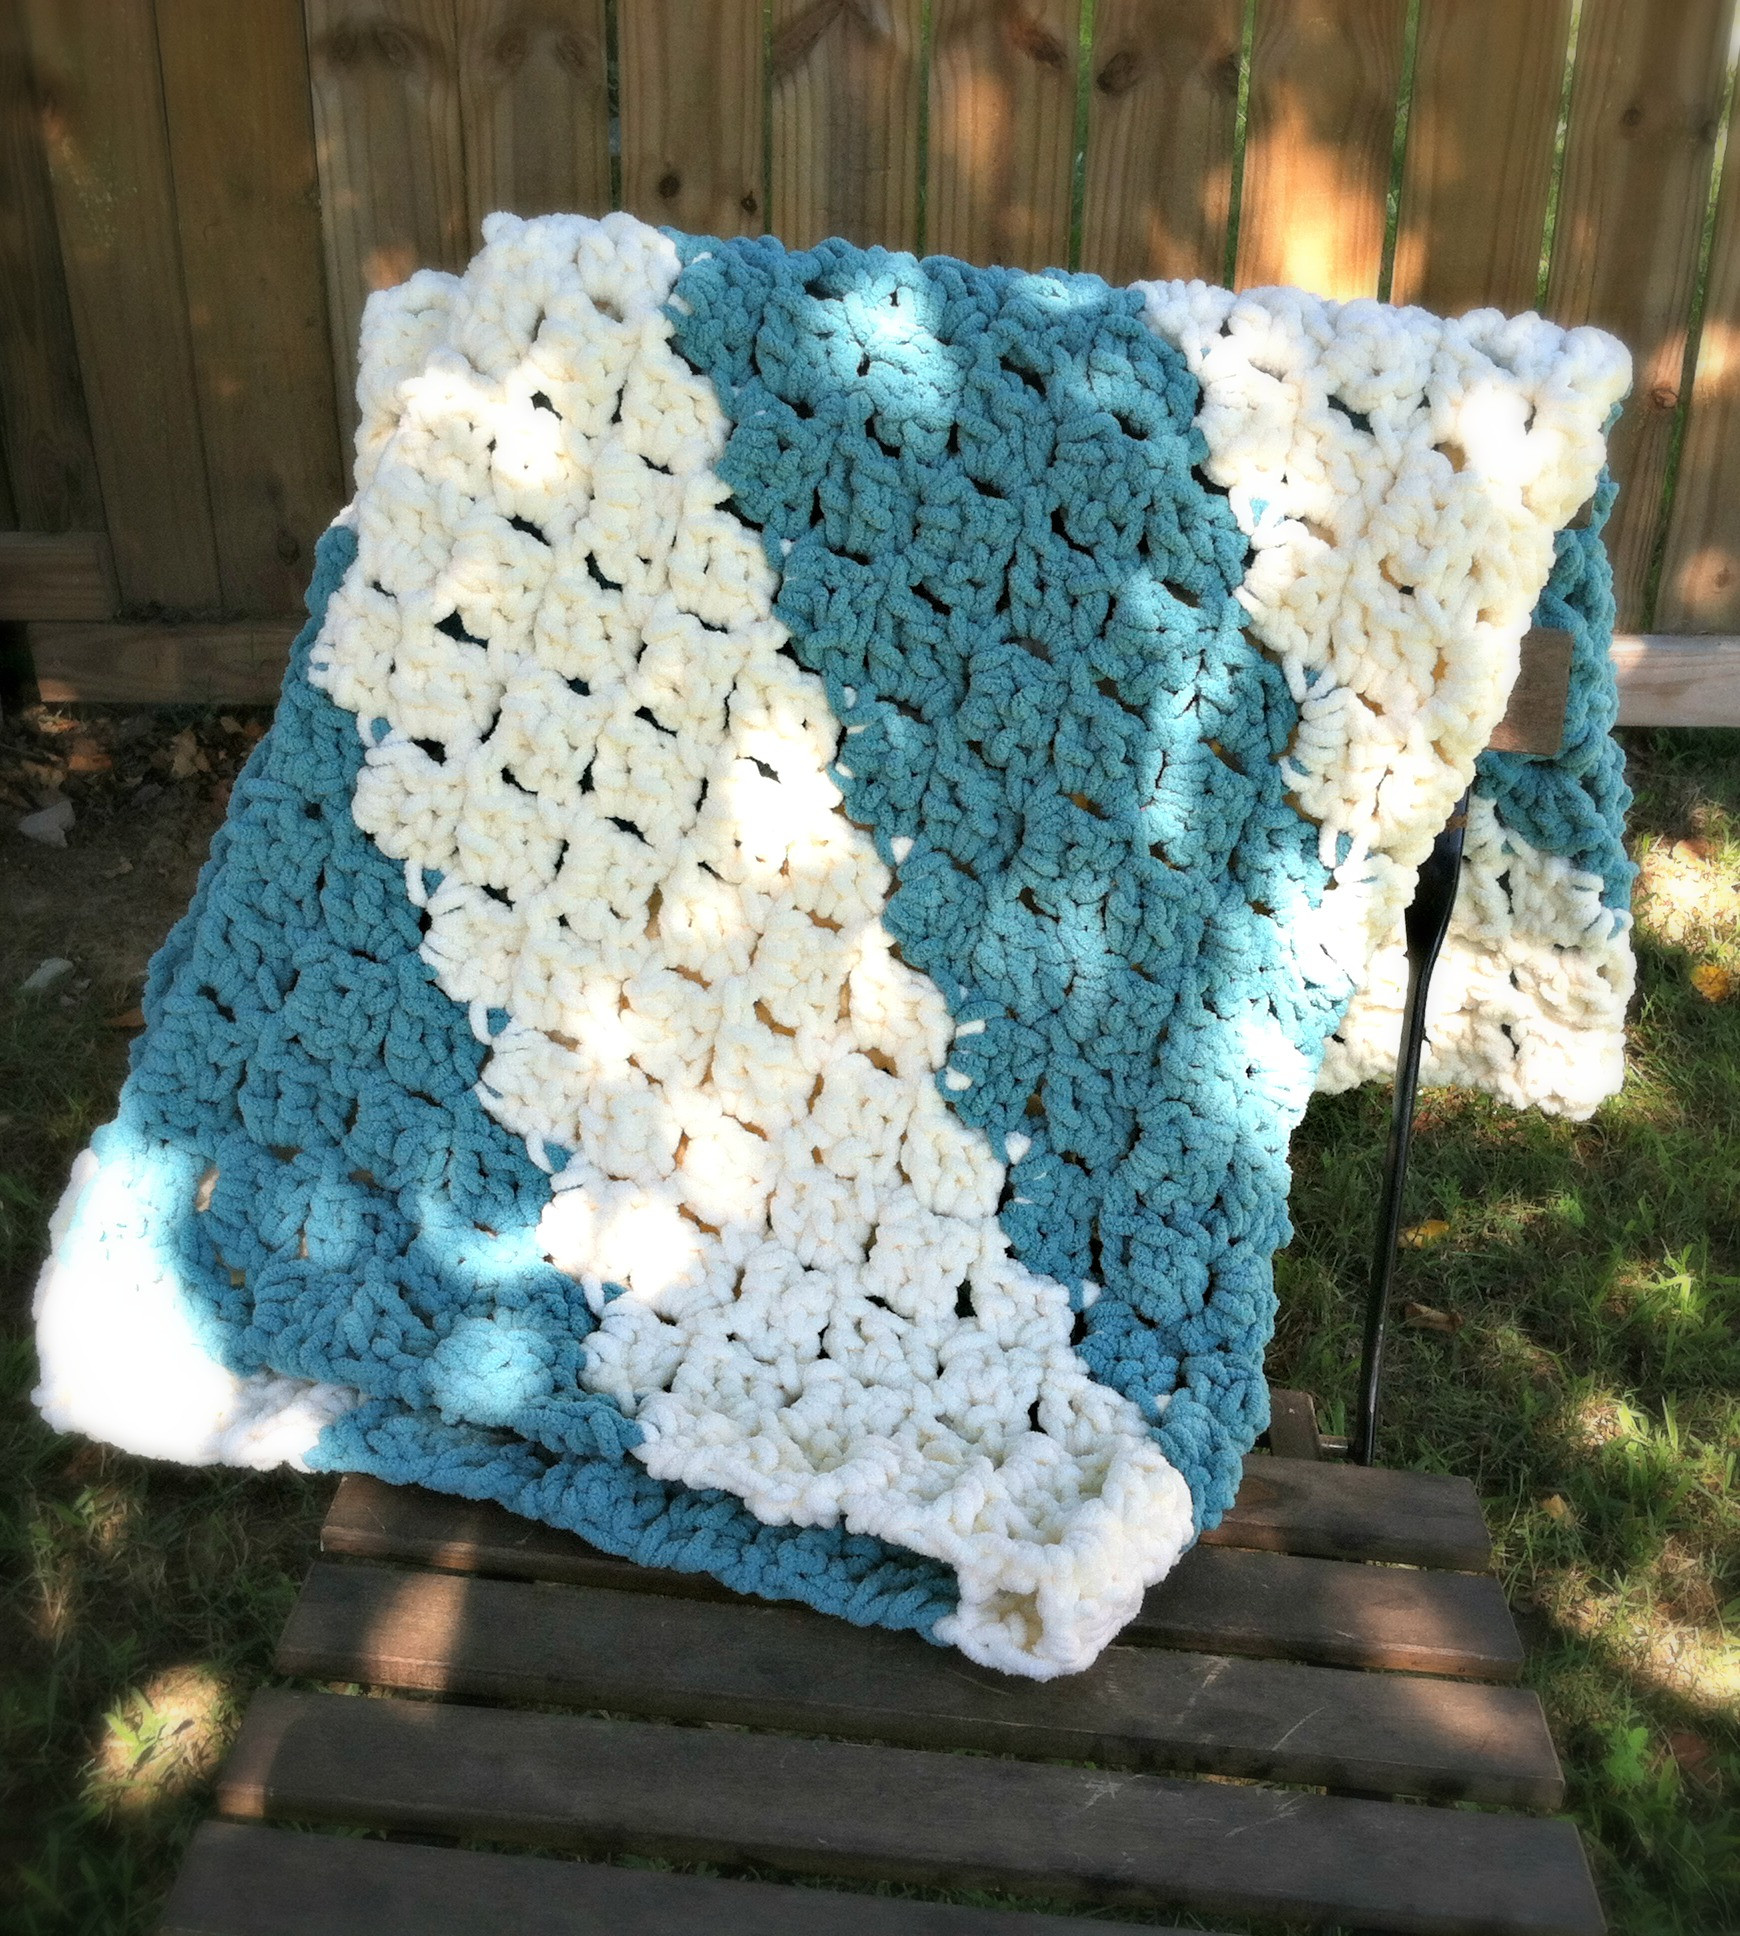 Easy Crochet Blanket Patterns Lovely Quick and Easy Baby Blanket Free Crochet Pattern Of Amazing 50 Ideas Easy Crochet Blanket Patterns